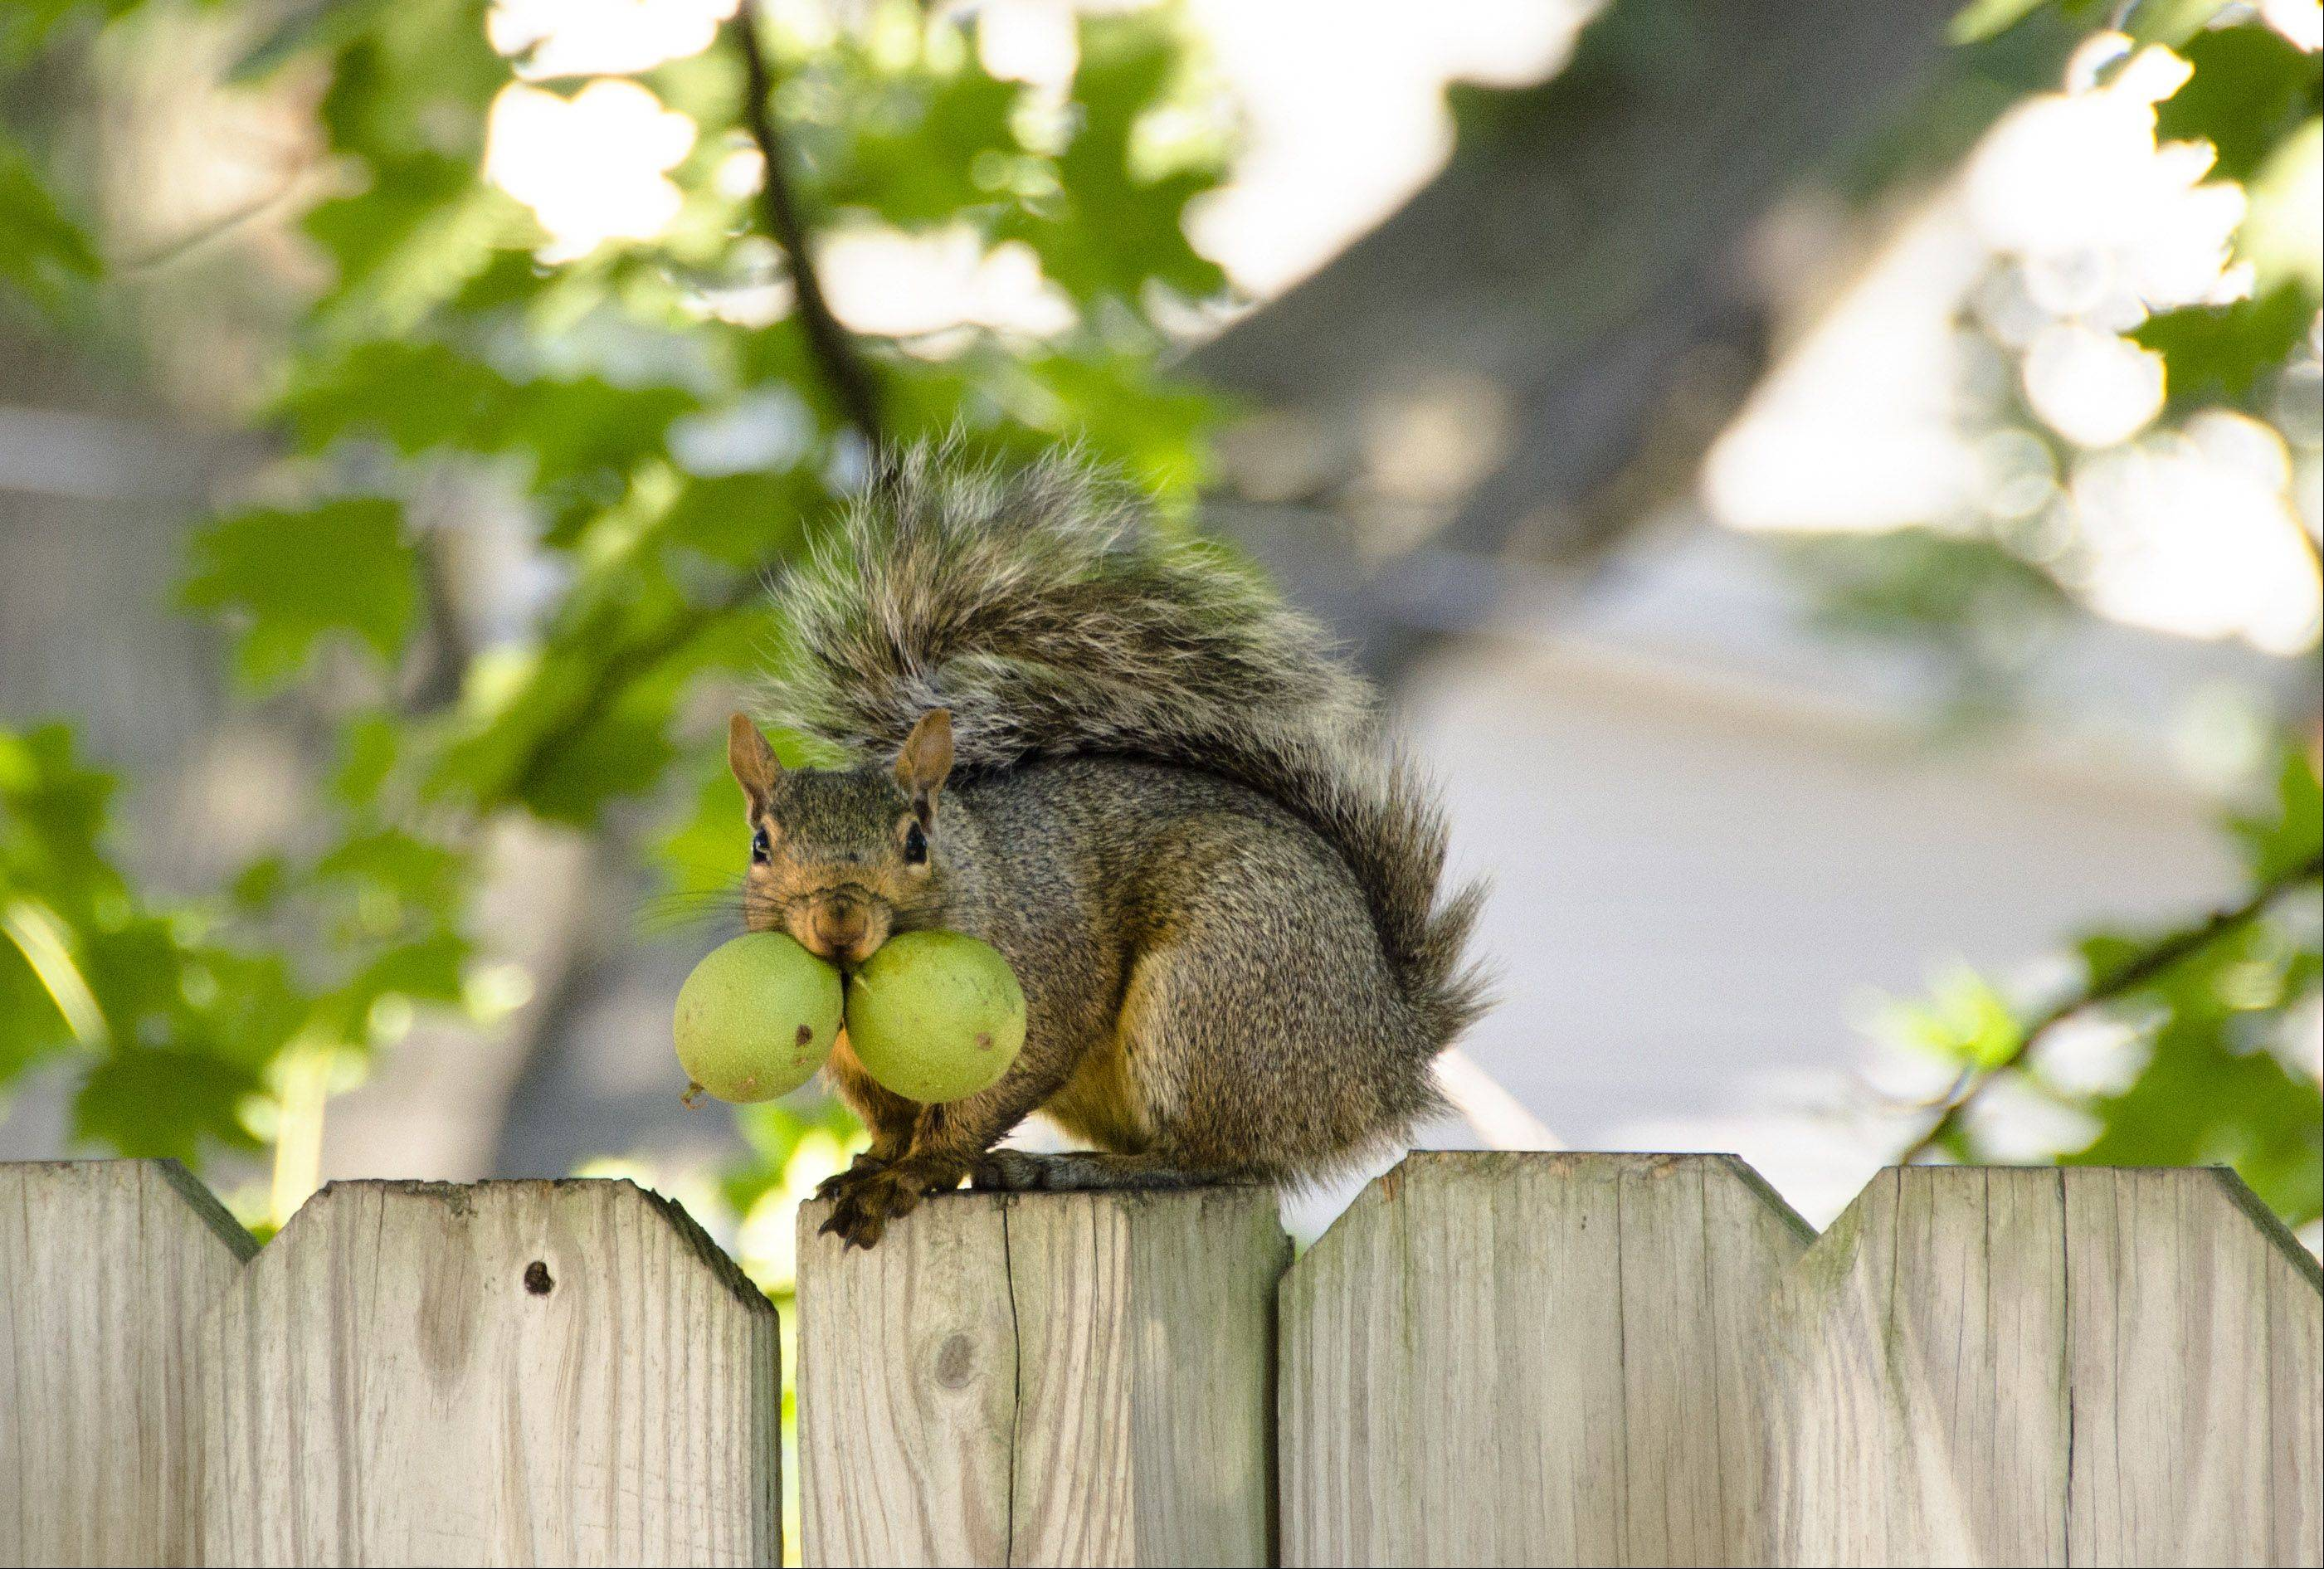 The sudden cool weather has this ambitious squirrel stashing walnuts around our backyard.